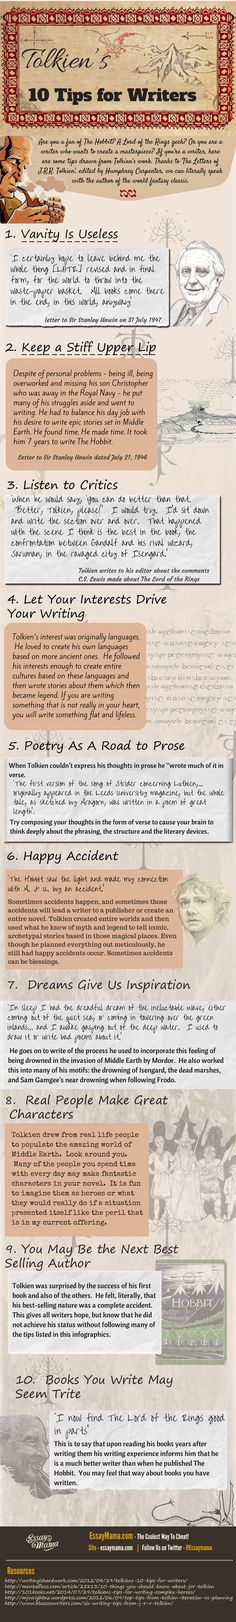 Writing tips from Tolkien. I've never read any of his books but this is great advice. I take number 8 to heart all the time. Everyone in my life is going to end up in a novel at some point.